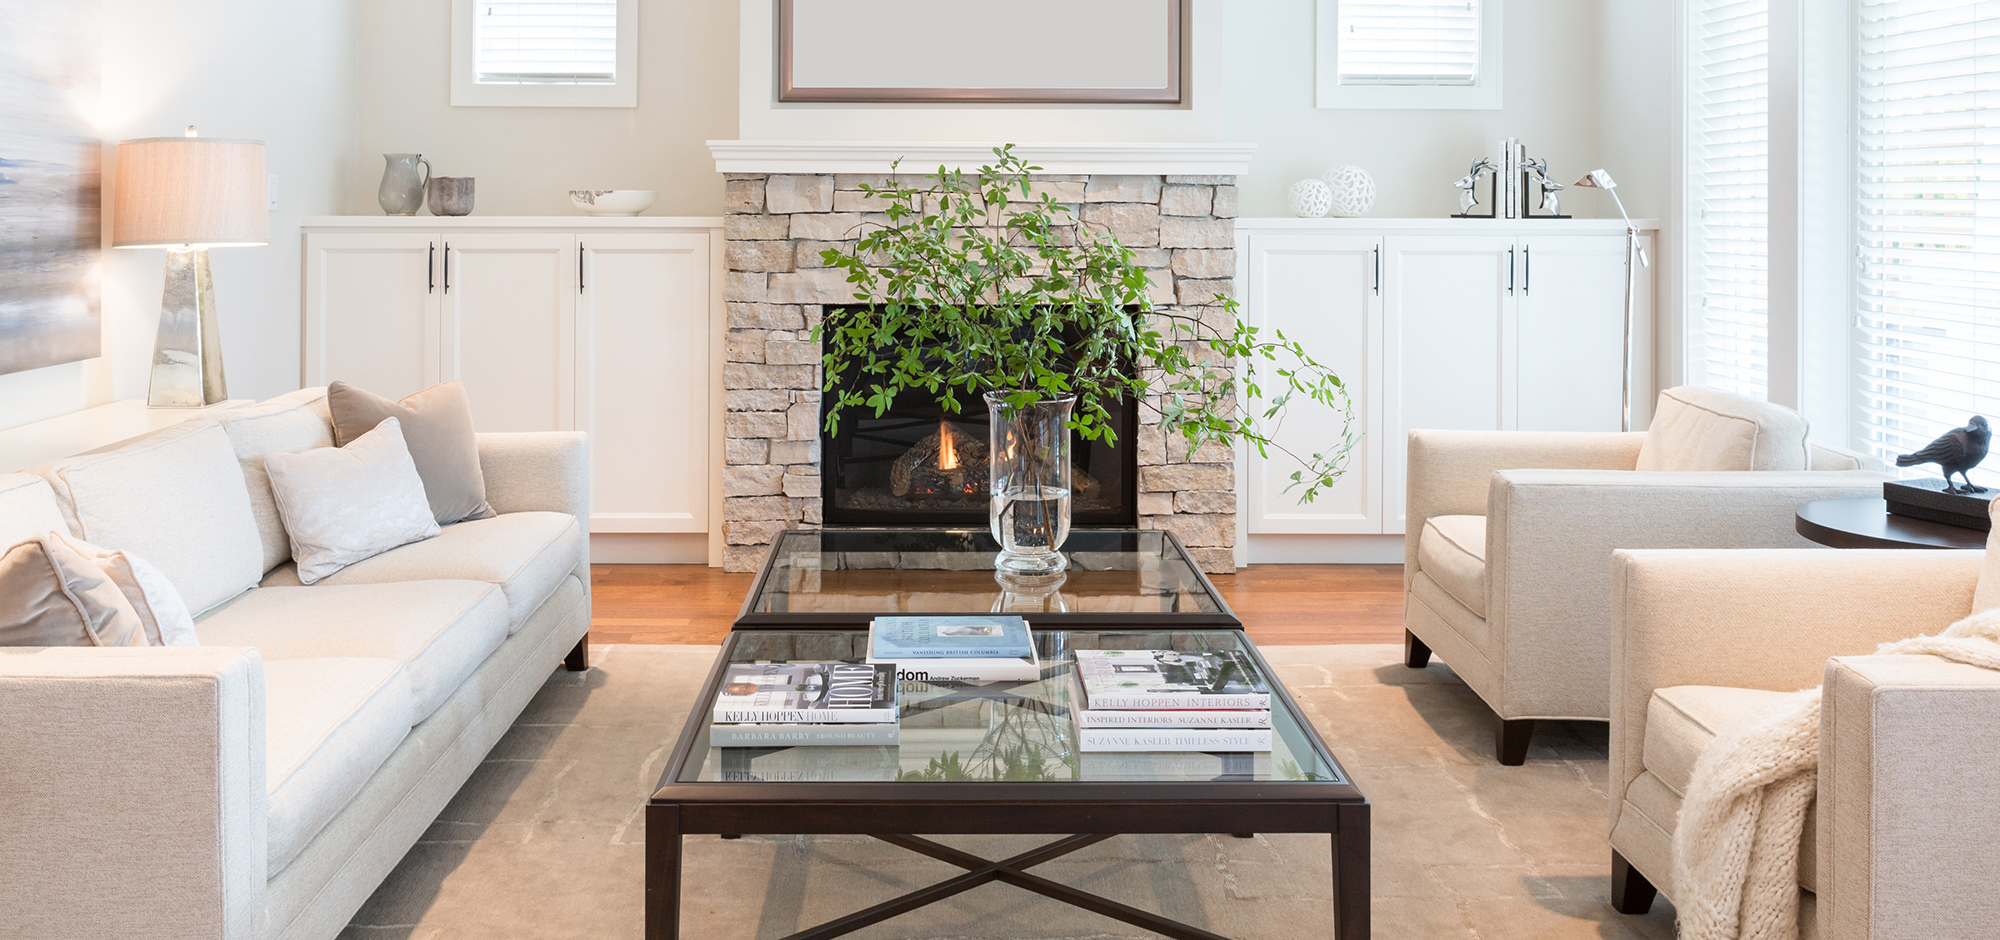 White living room with off-white brick fireplace, white couches, and a glass center table